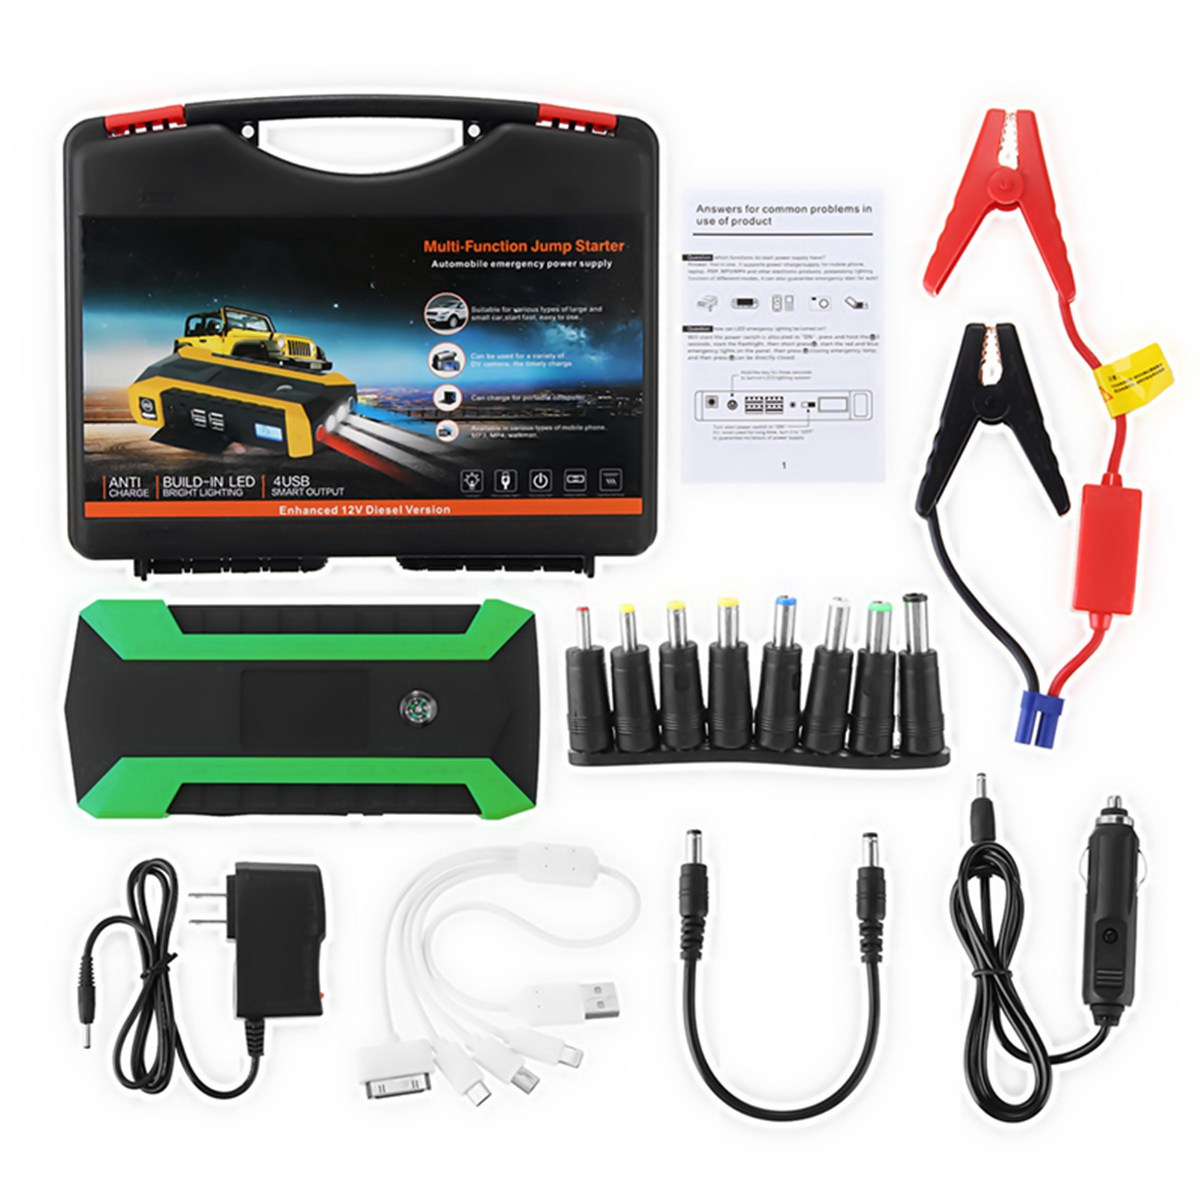 все цены на Car Jump Starter 89800mAh 12V 4USB Portable Car Battery Booster Charger Booster Power Bank Starting Device Car Starter 600A онлайн